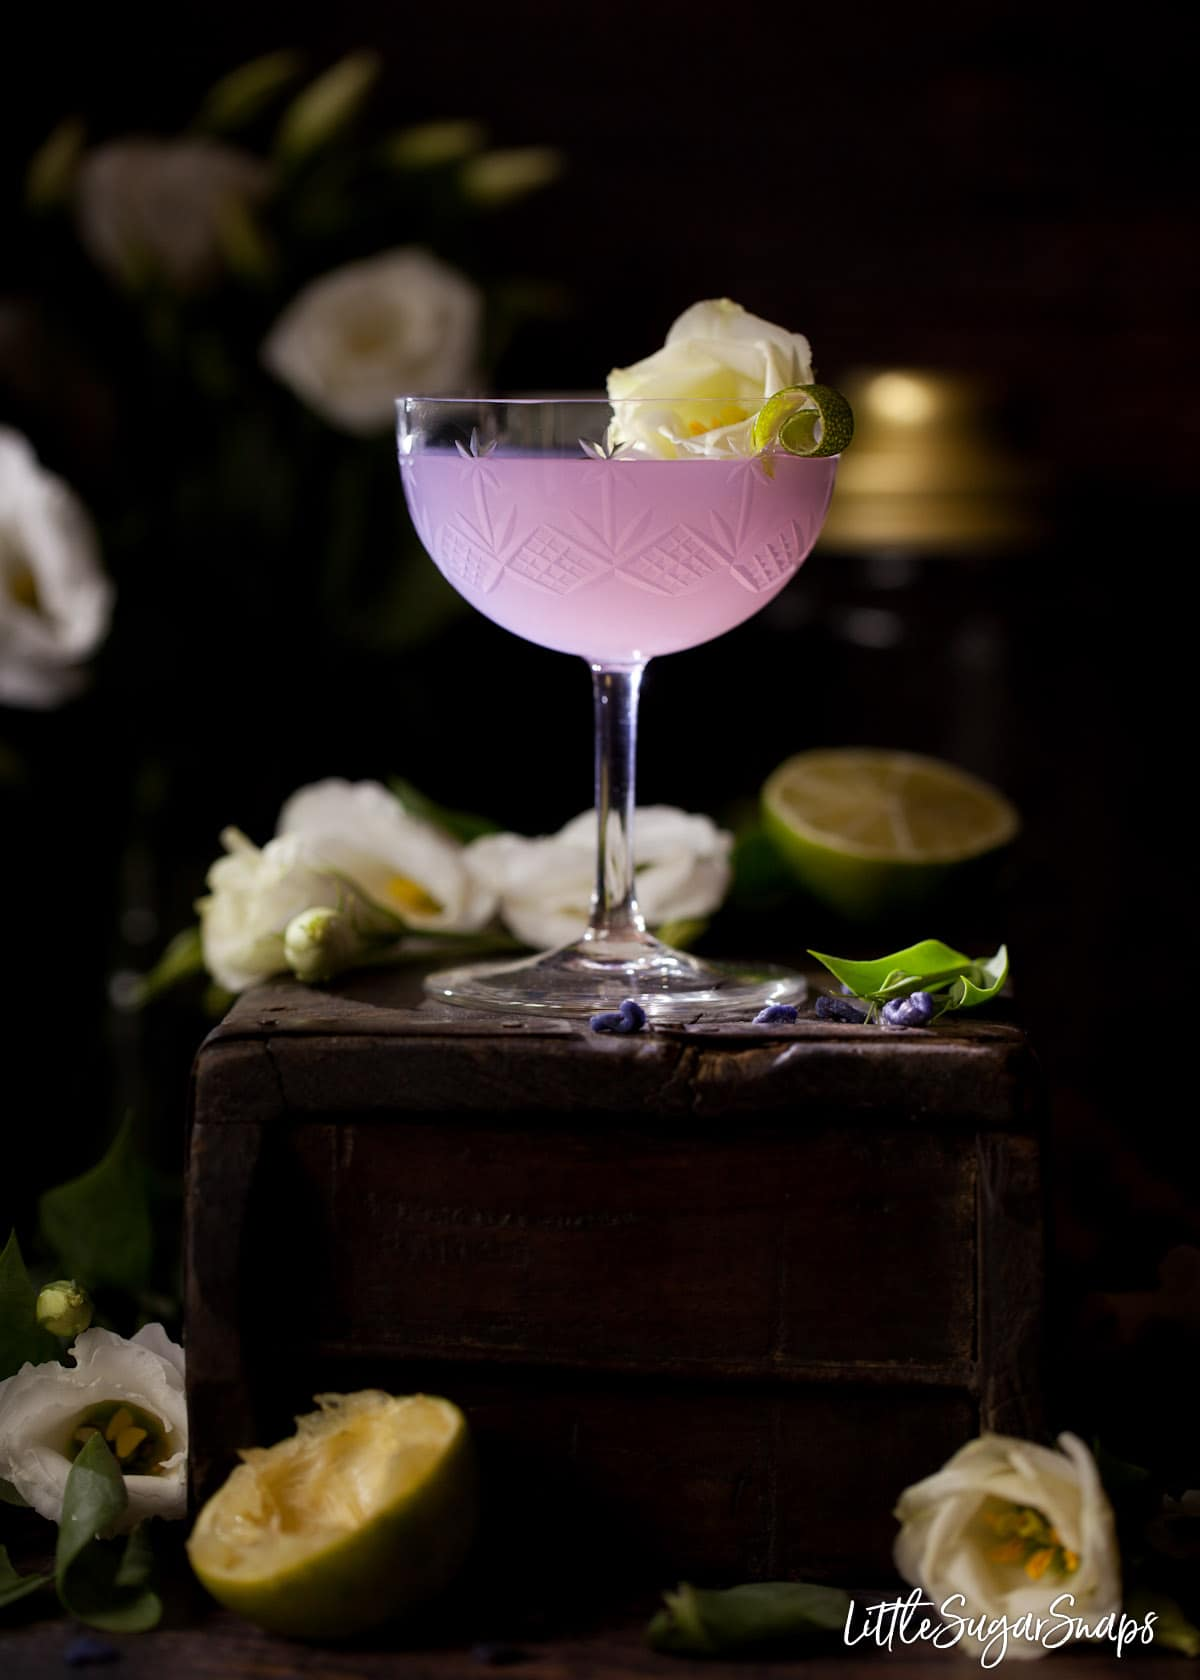 A violet cocktail on a wooden box. The drink is garnished with a curl of lime and a white flower